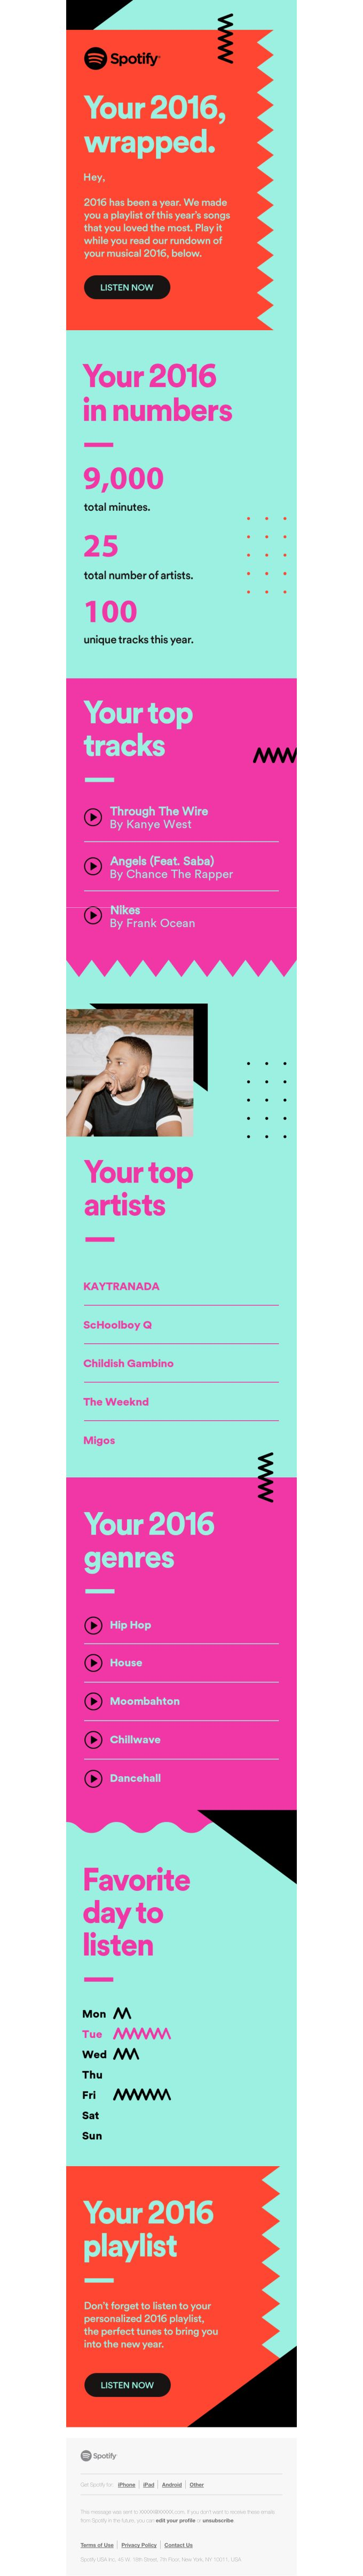 Your 2016 in music: personalized stats and playlist - Really Good Emails